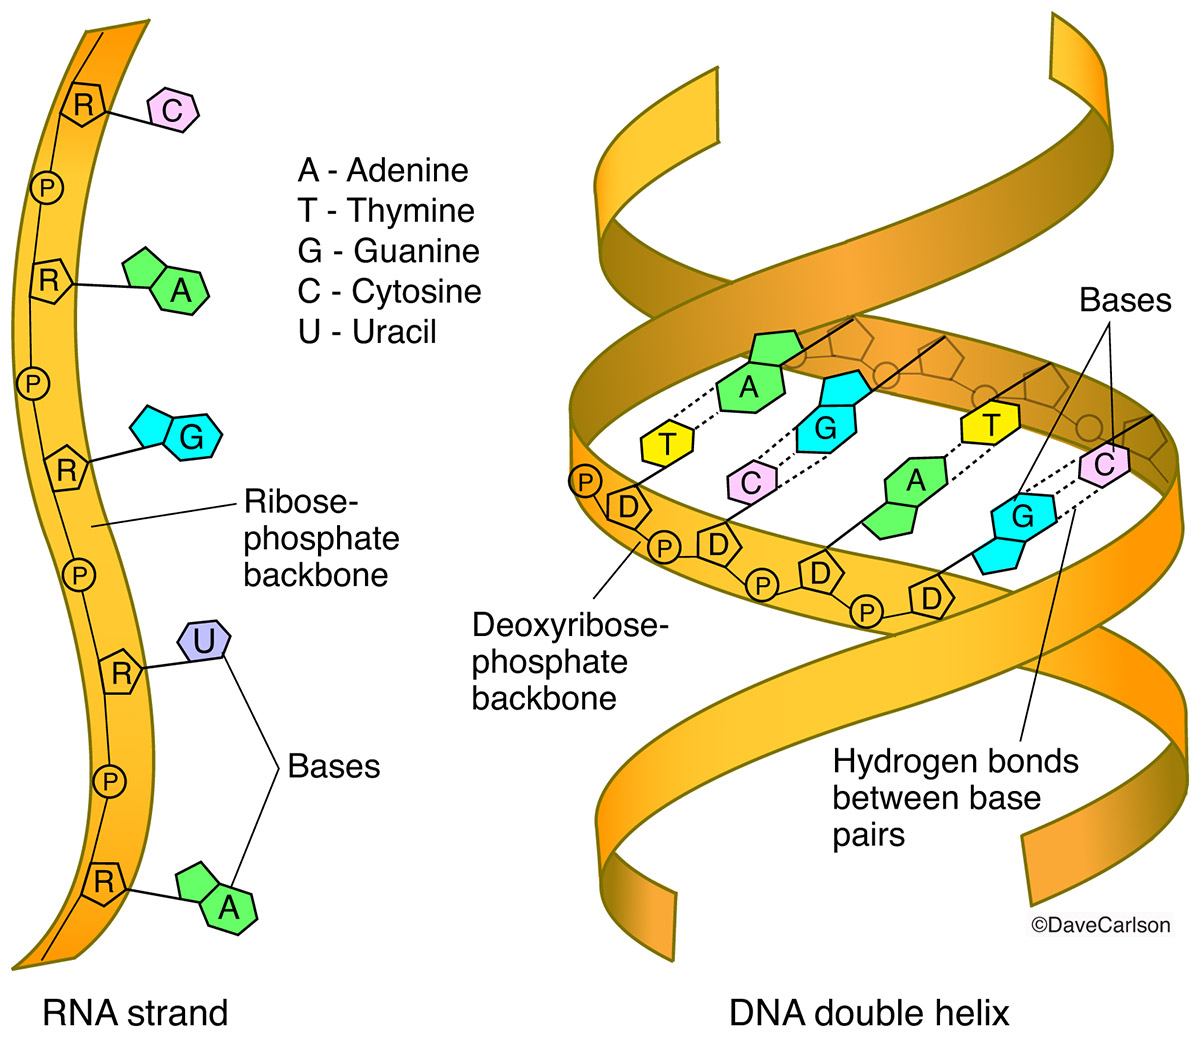 structure of dna rna Dna and rna are different from their structure, functions and stabilities dna has four nitrogen bases adenine, thymine, cytosine, and guanine and for rna instead of.